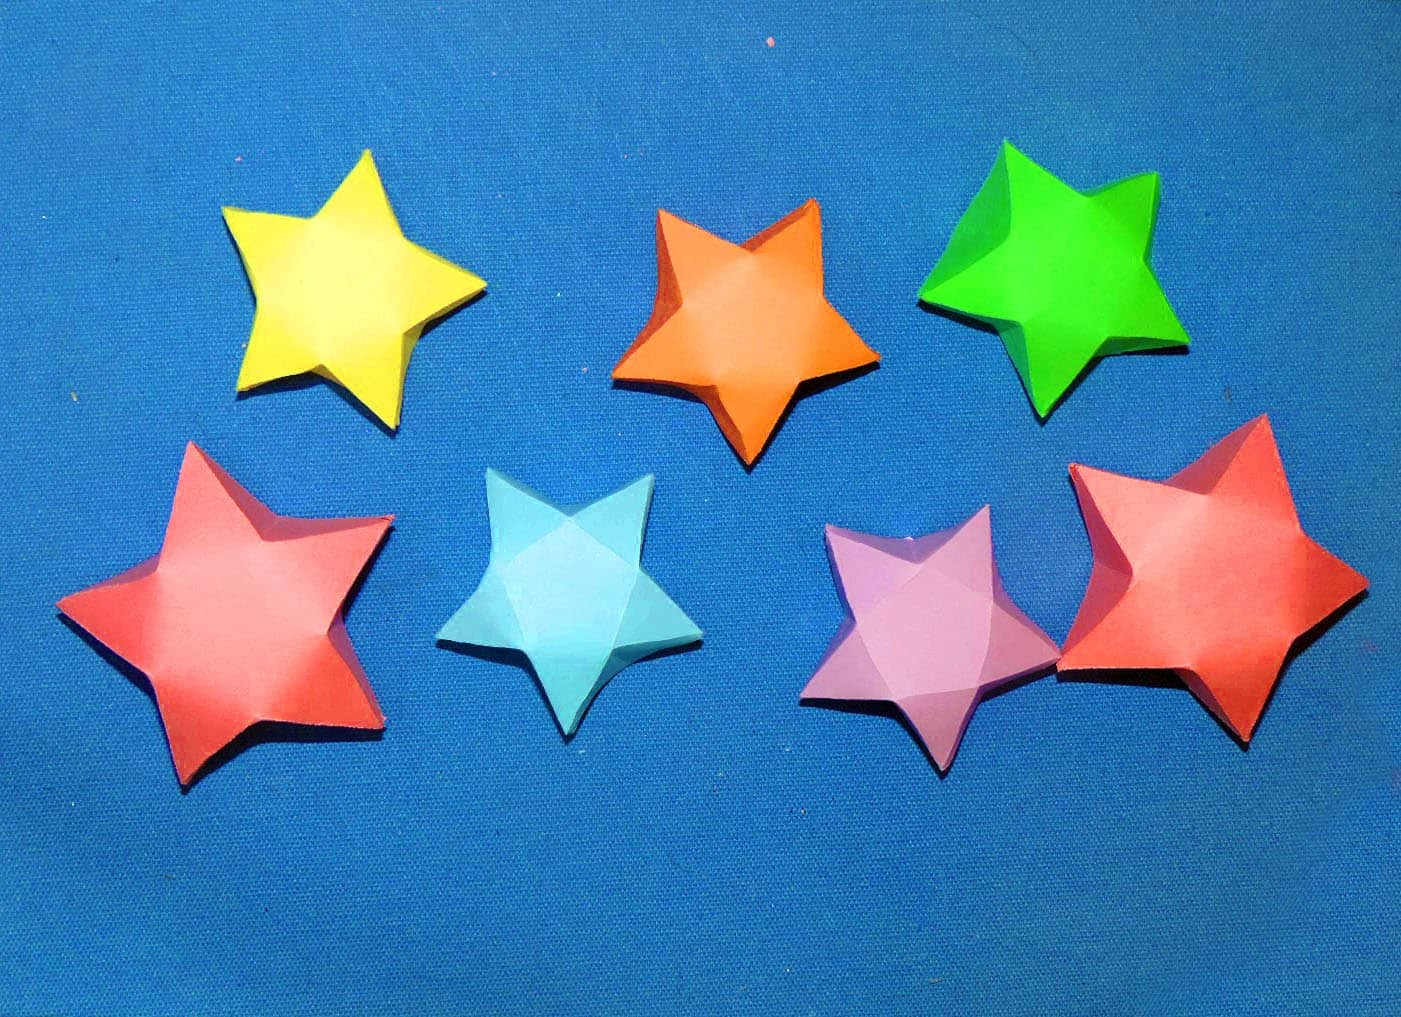 Miniature wrapping paper origami stars